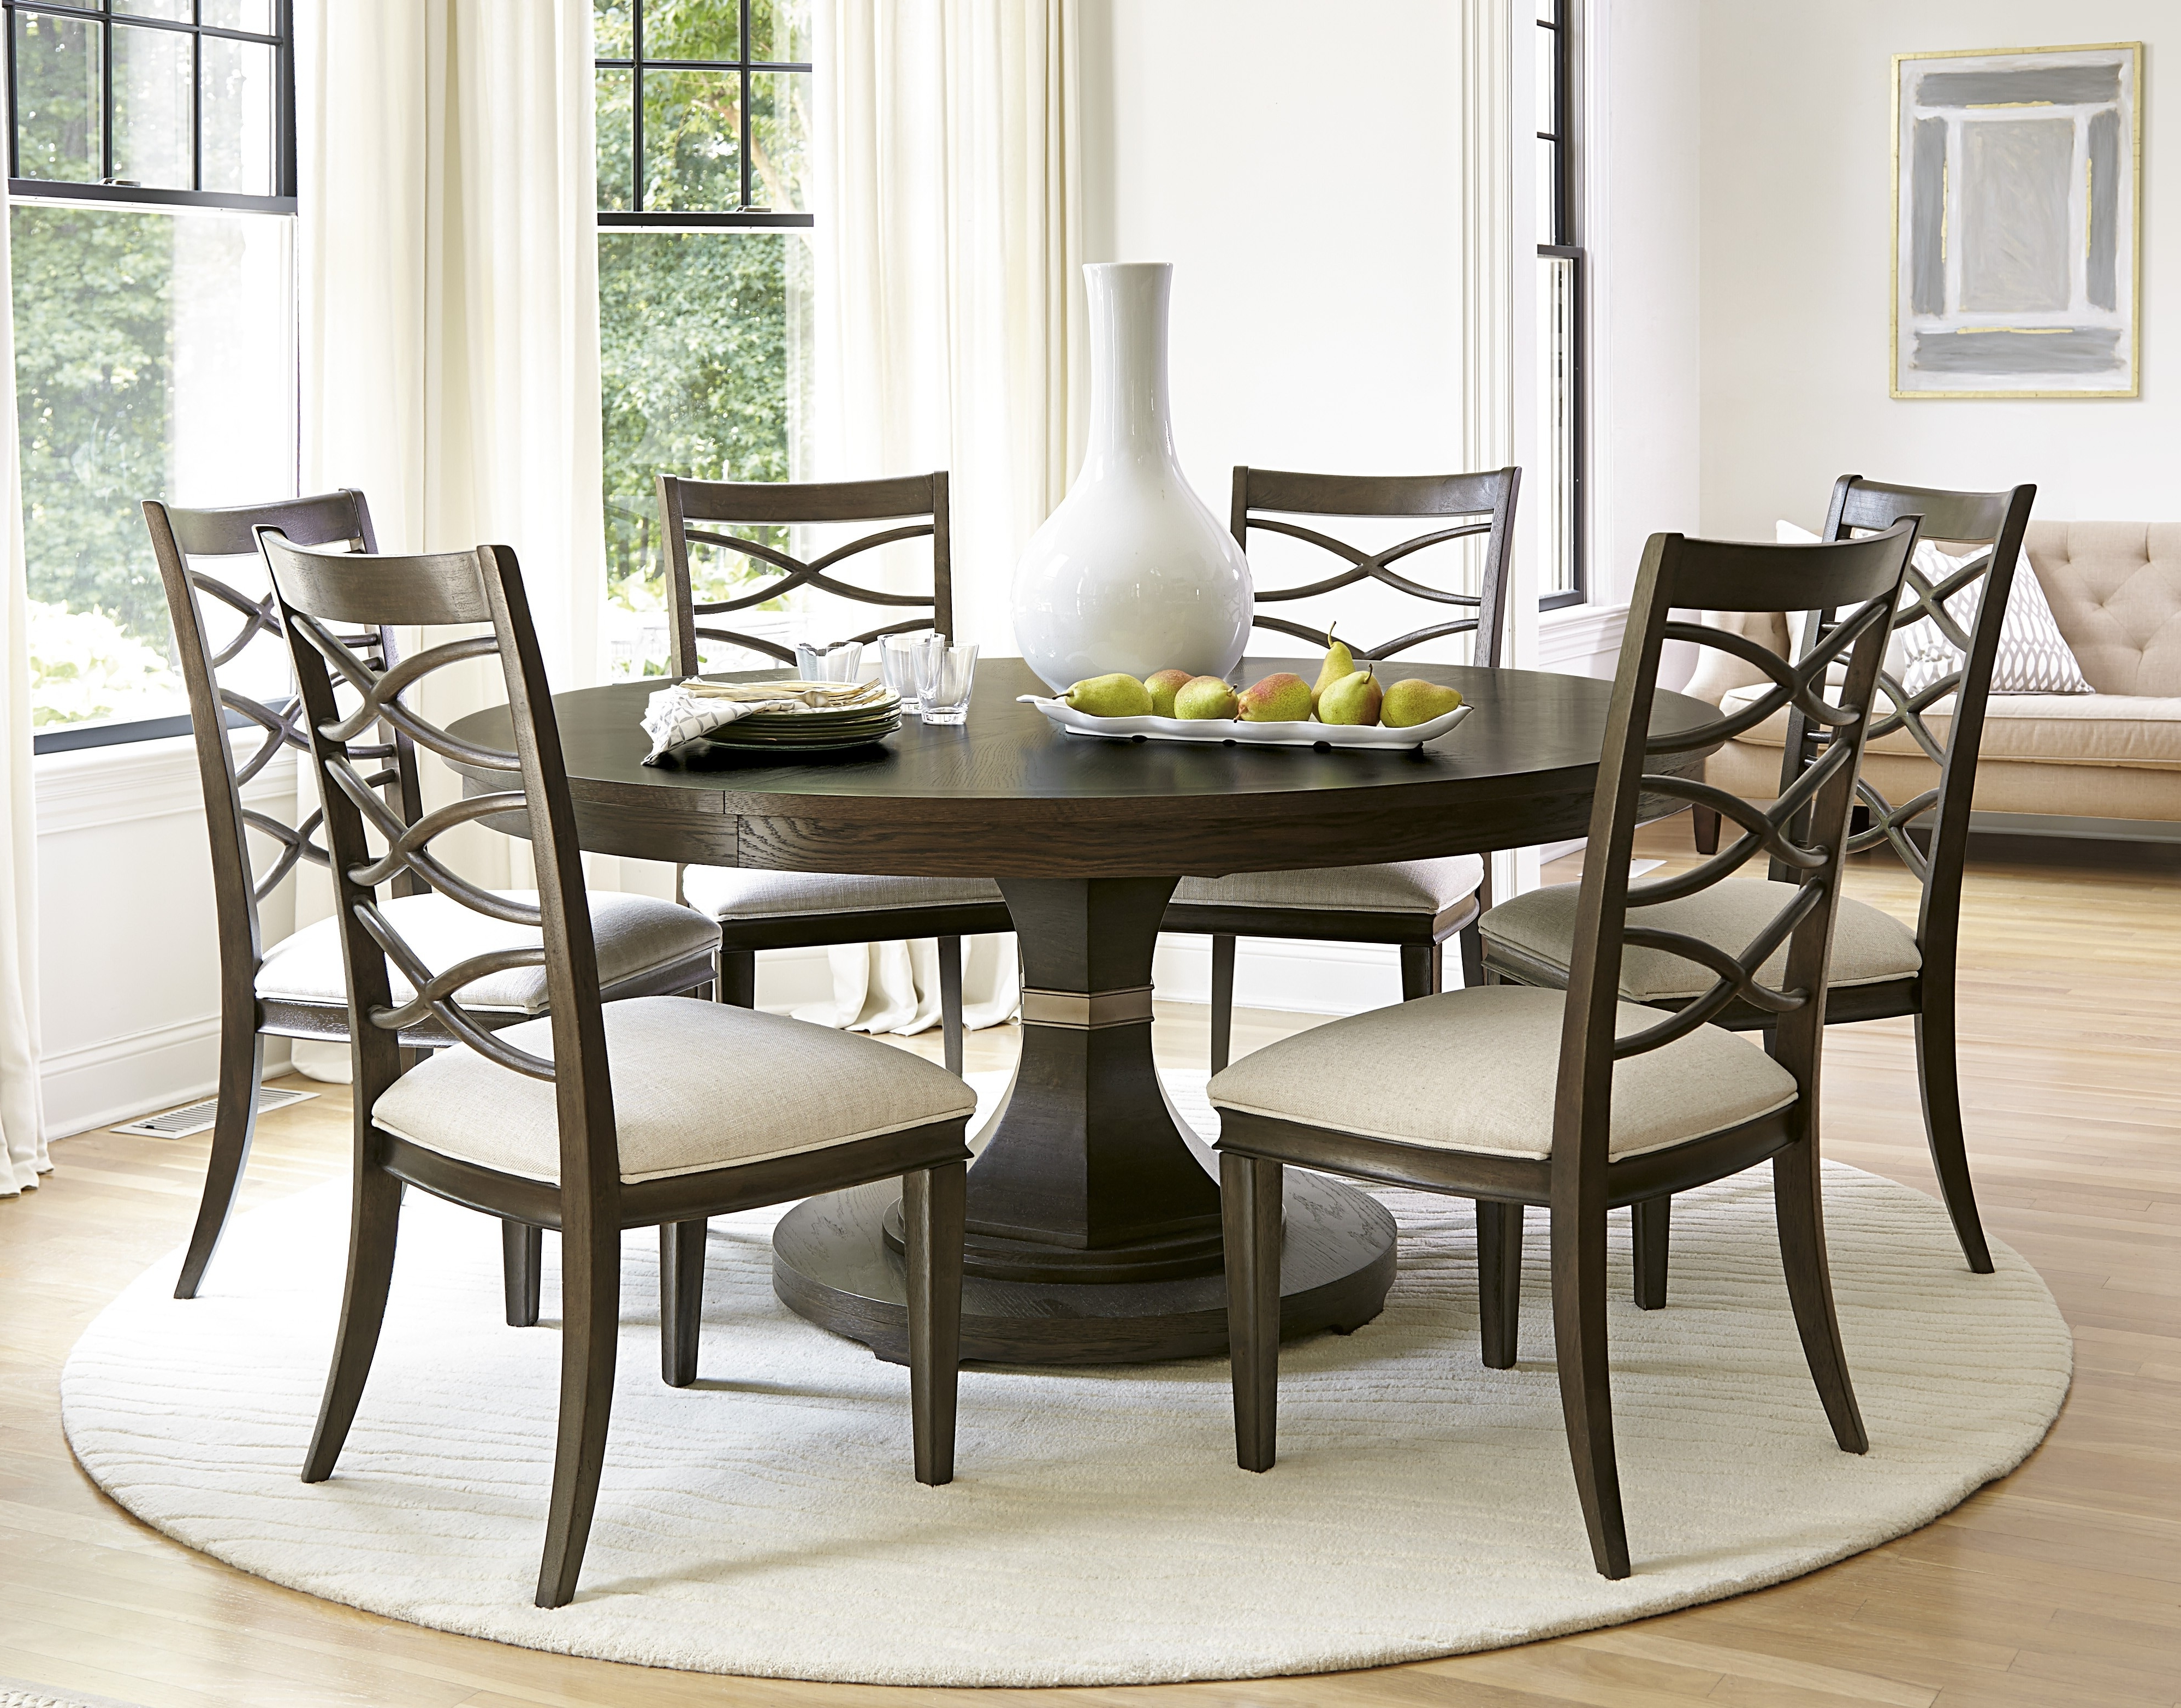 2018 Top Popular Round Dining Room Table Property Plan – Officeauc Throughout Caden 5 Piece Round Dining Sets (Gallery 7 of 25)